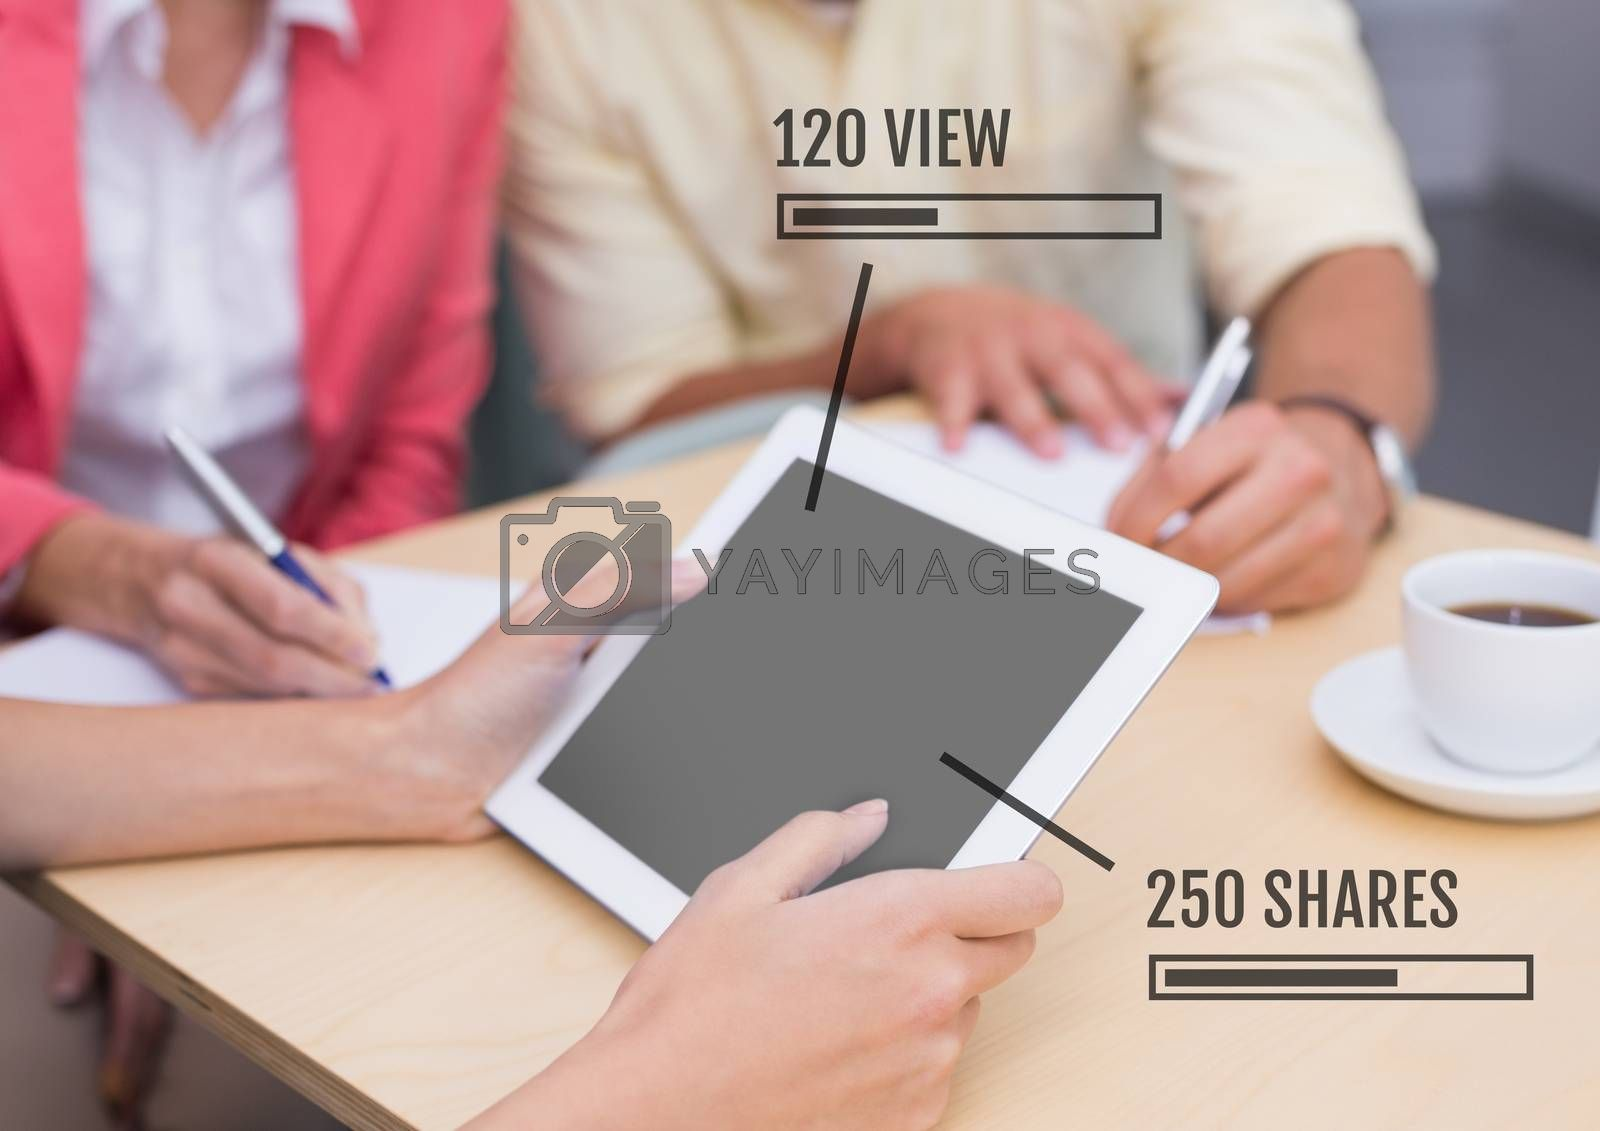 Digital composite of People on tablet with Views and Shares status bars at meeting